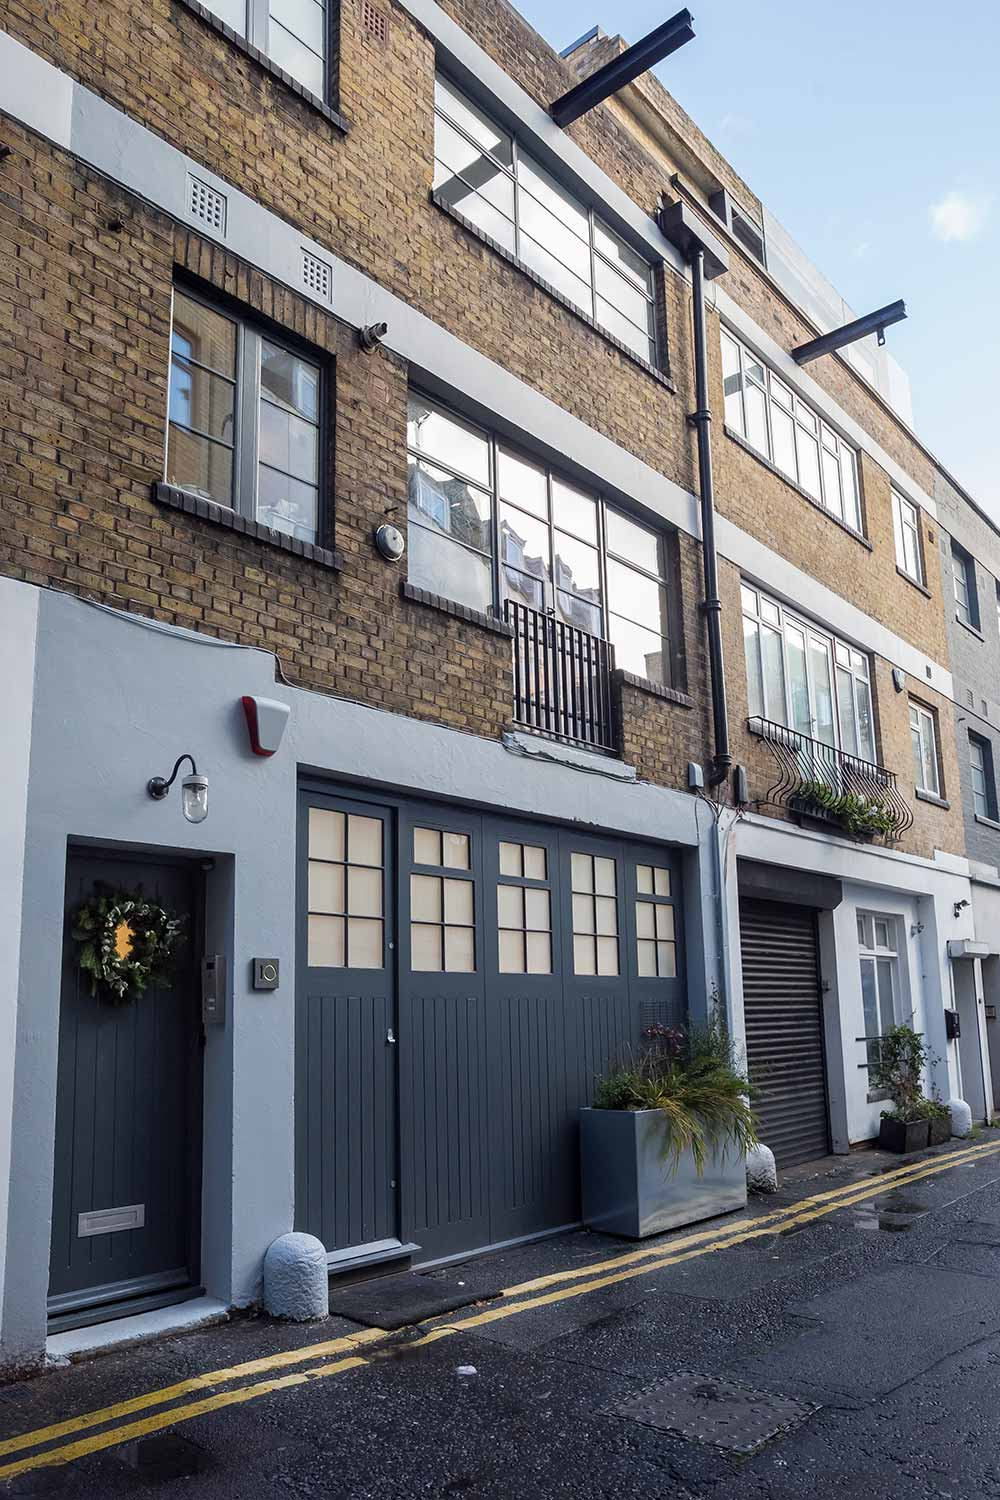 exterior of brick building housing Ruth tomlinsons atelier in London with blue door